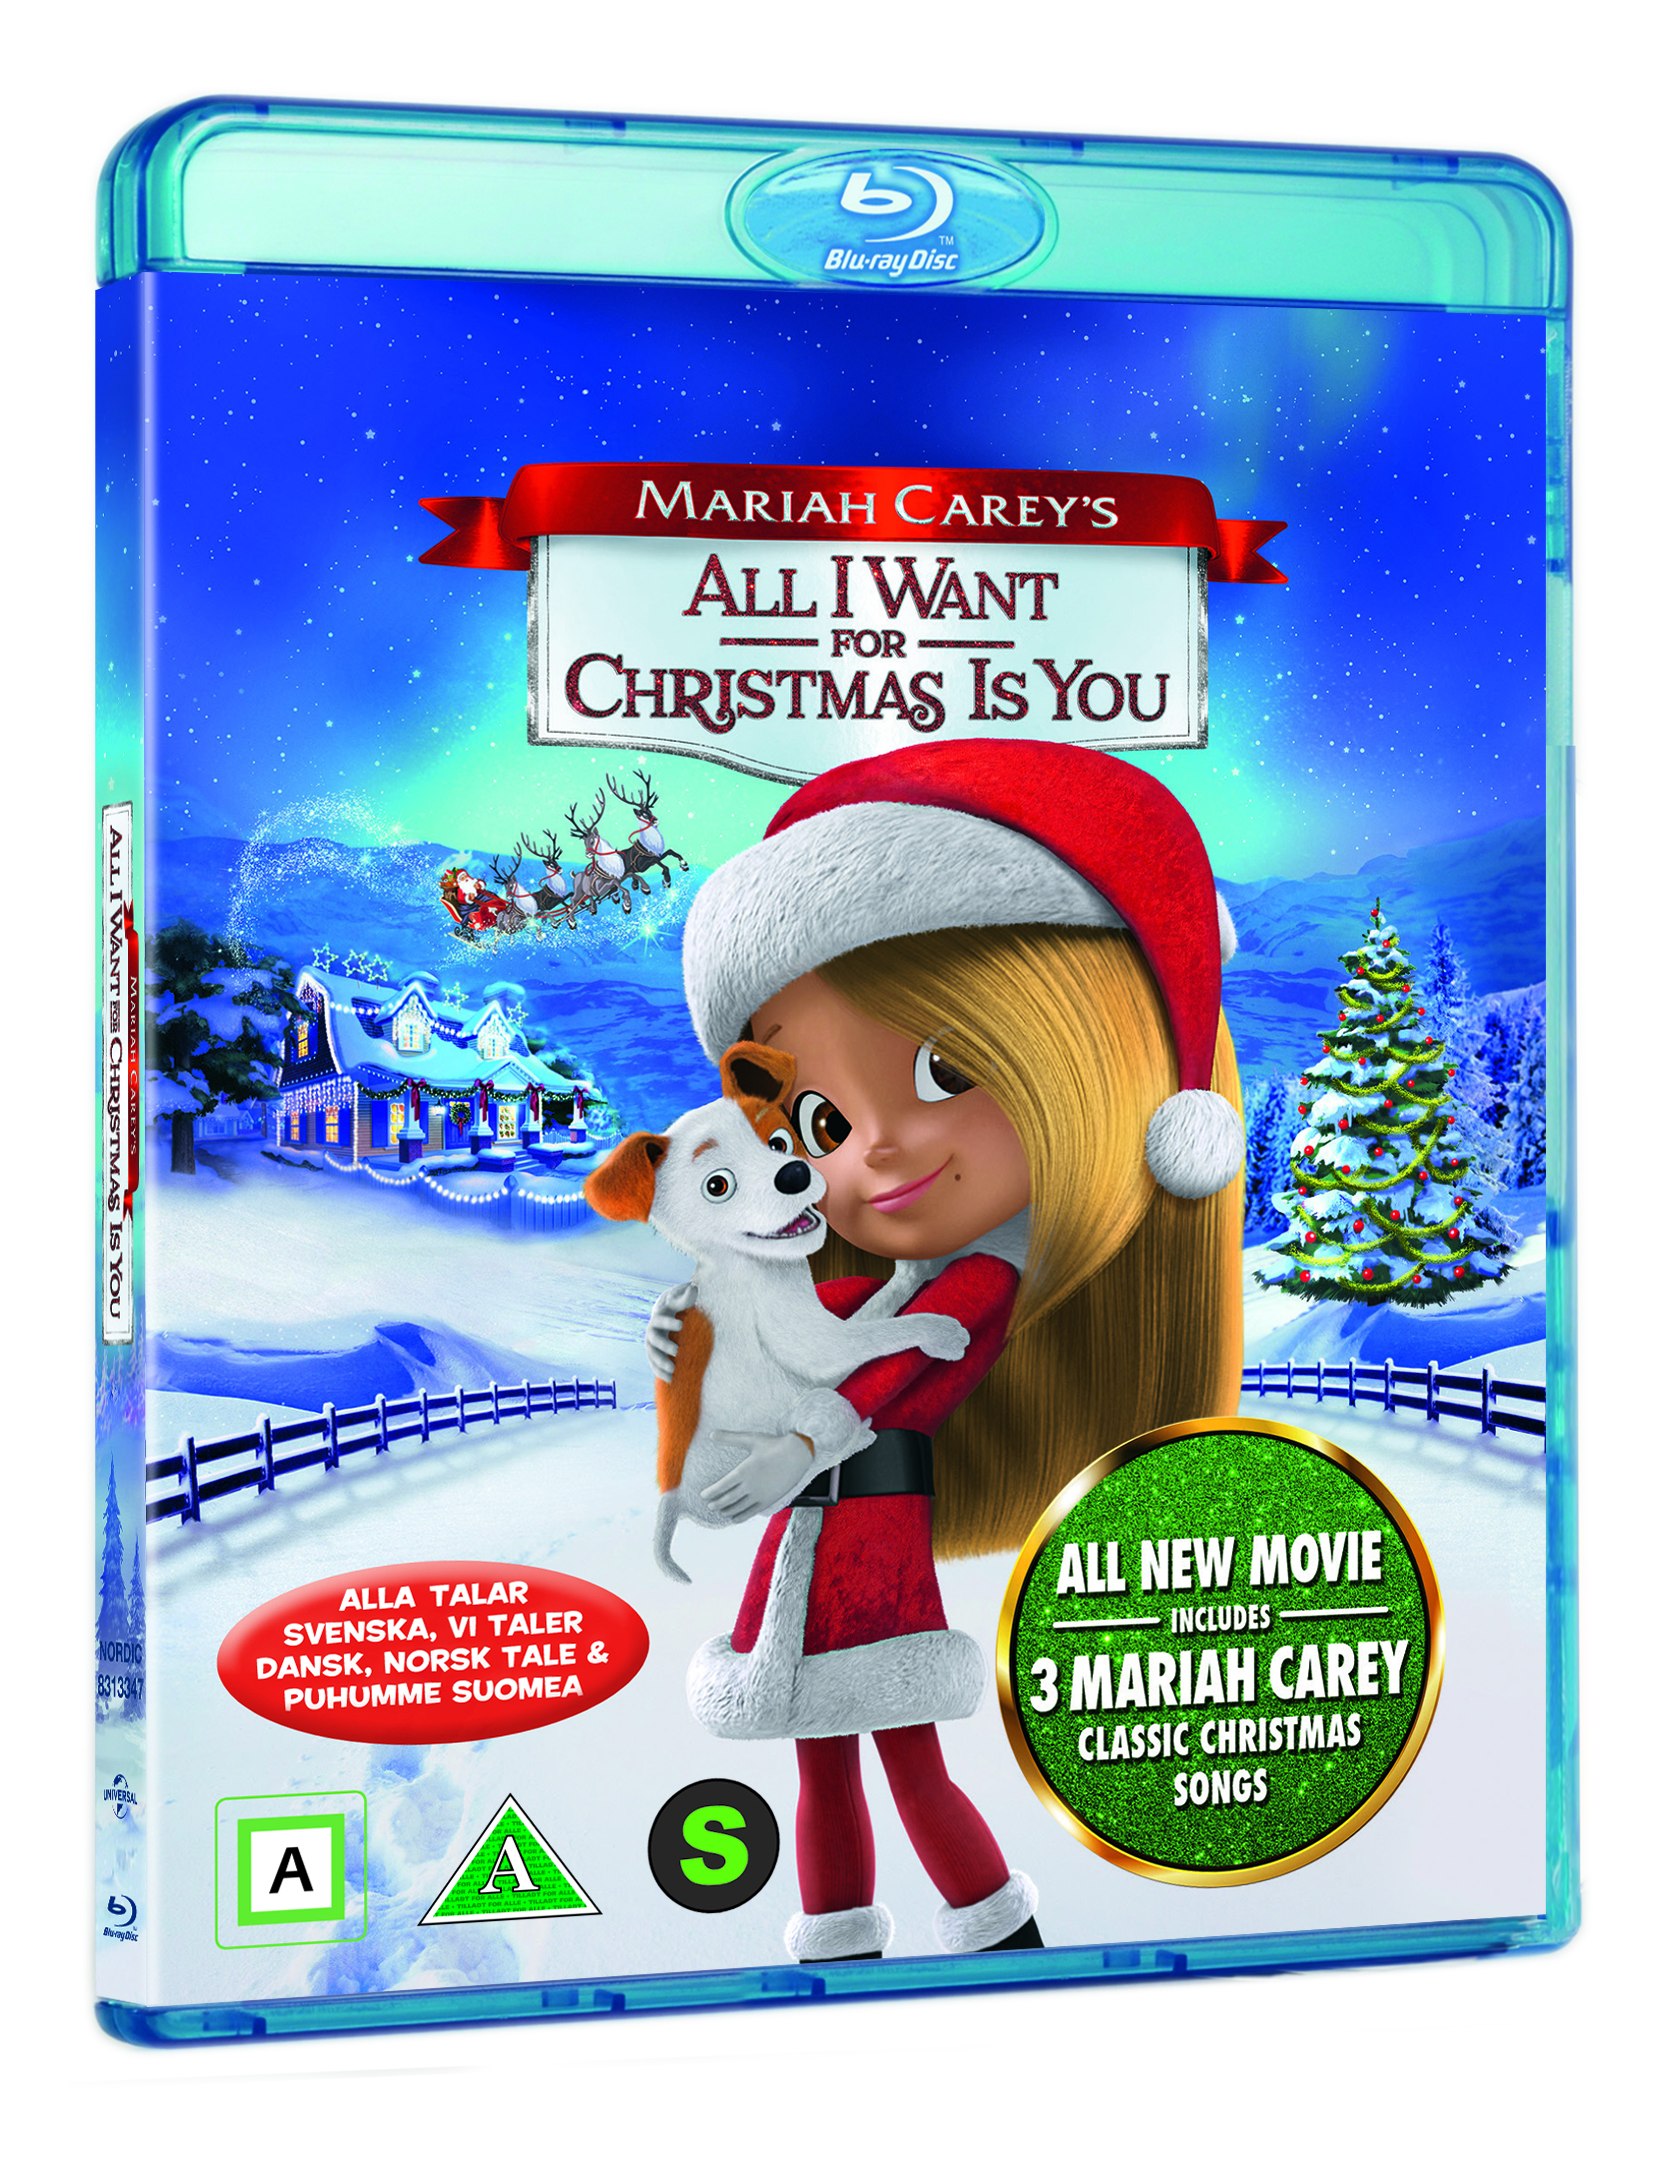 All I Want For Christmas Is You Movie.Mariah Carey S All I Want For Christmas Is You Blu Ray